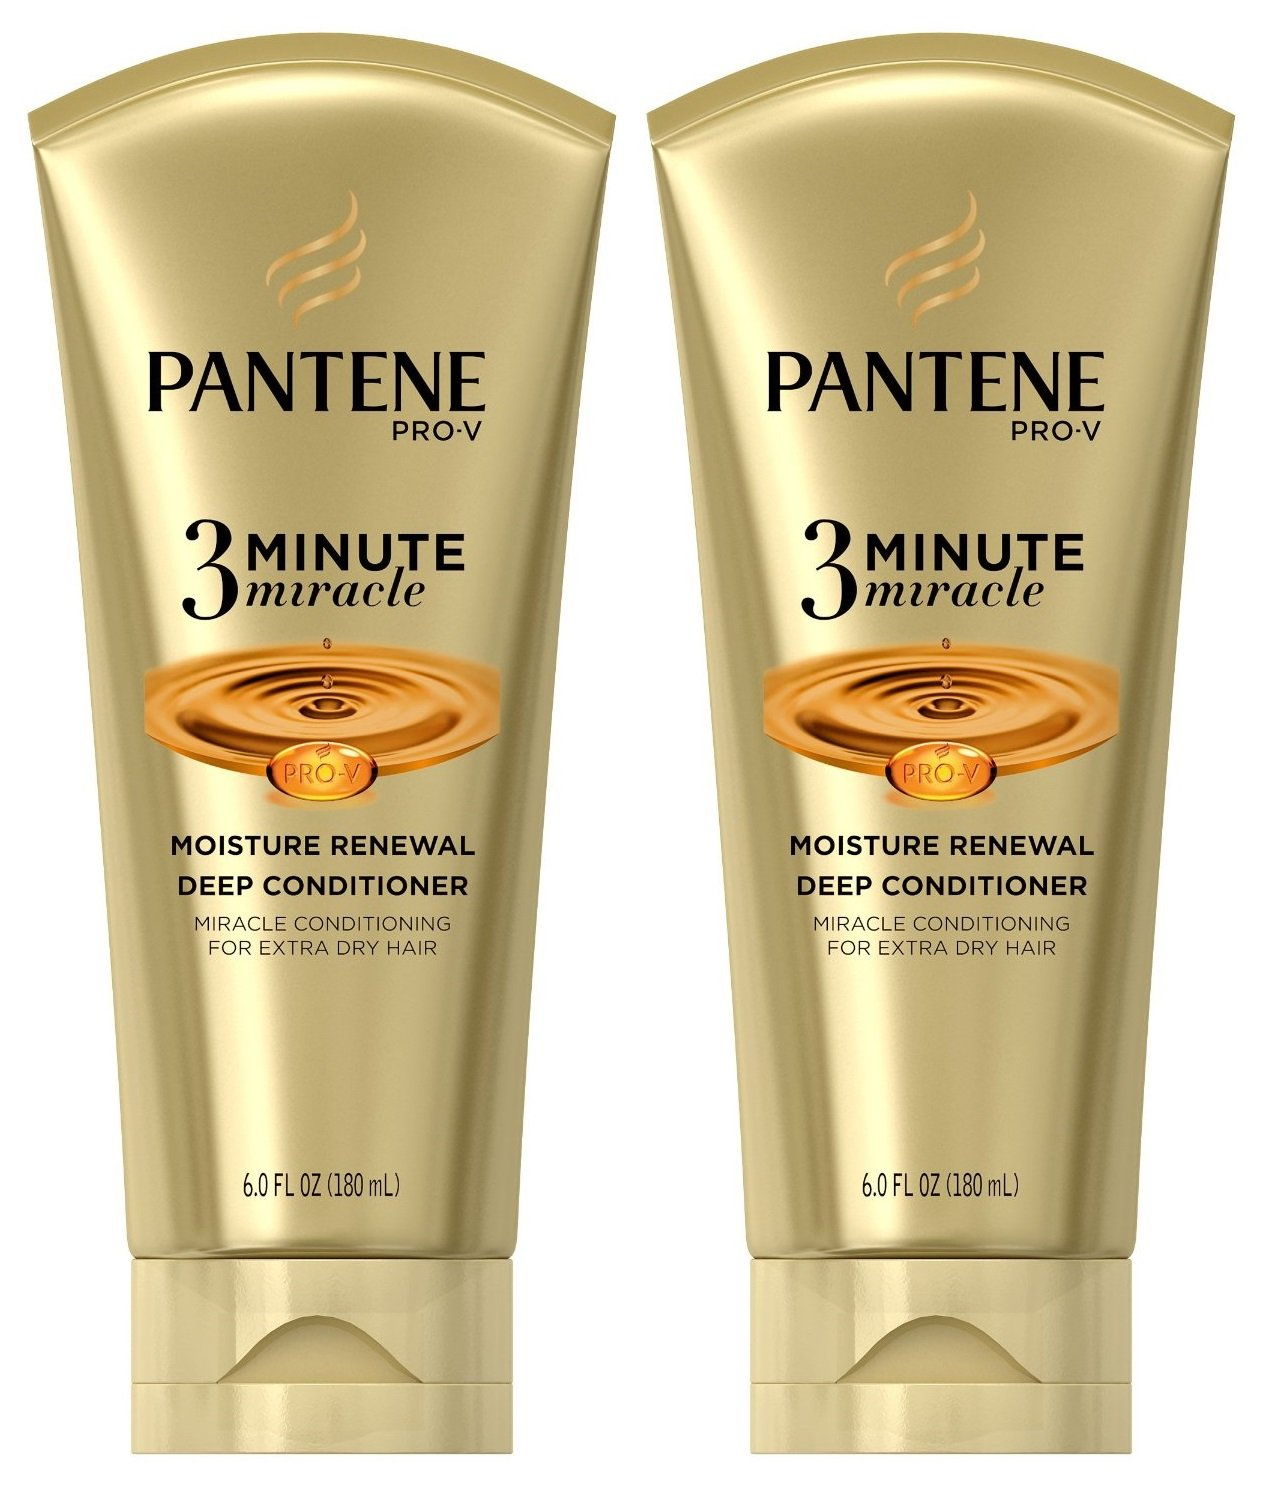 Pantene Pro-V 3 Minute Miracle Moisture Renewal Deep Conditioner, 6 Ounce (2-Pack)